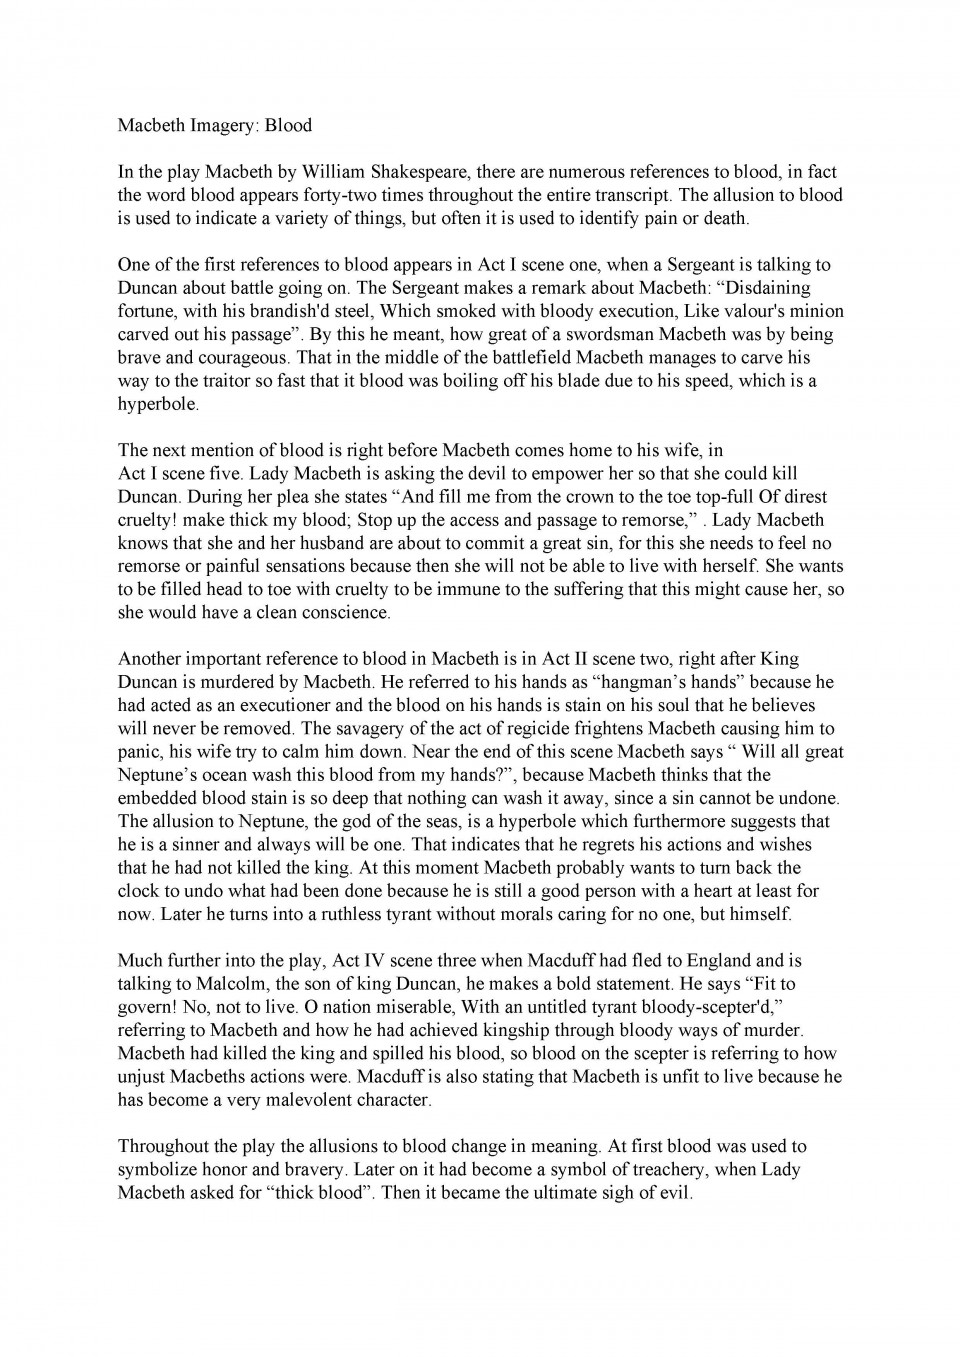 002 Macbeth Essay Sample Impressive Example Examples In Literature Opinion Pdf Scholarship About Yourself 960